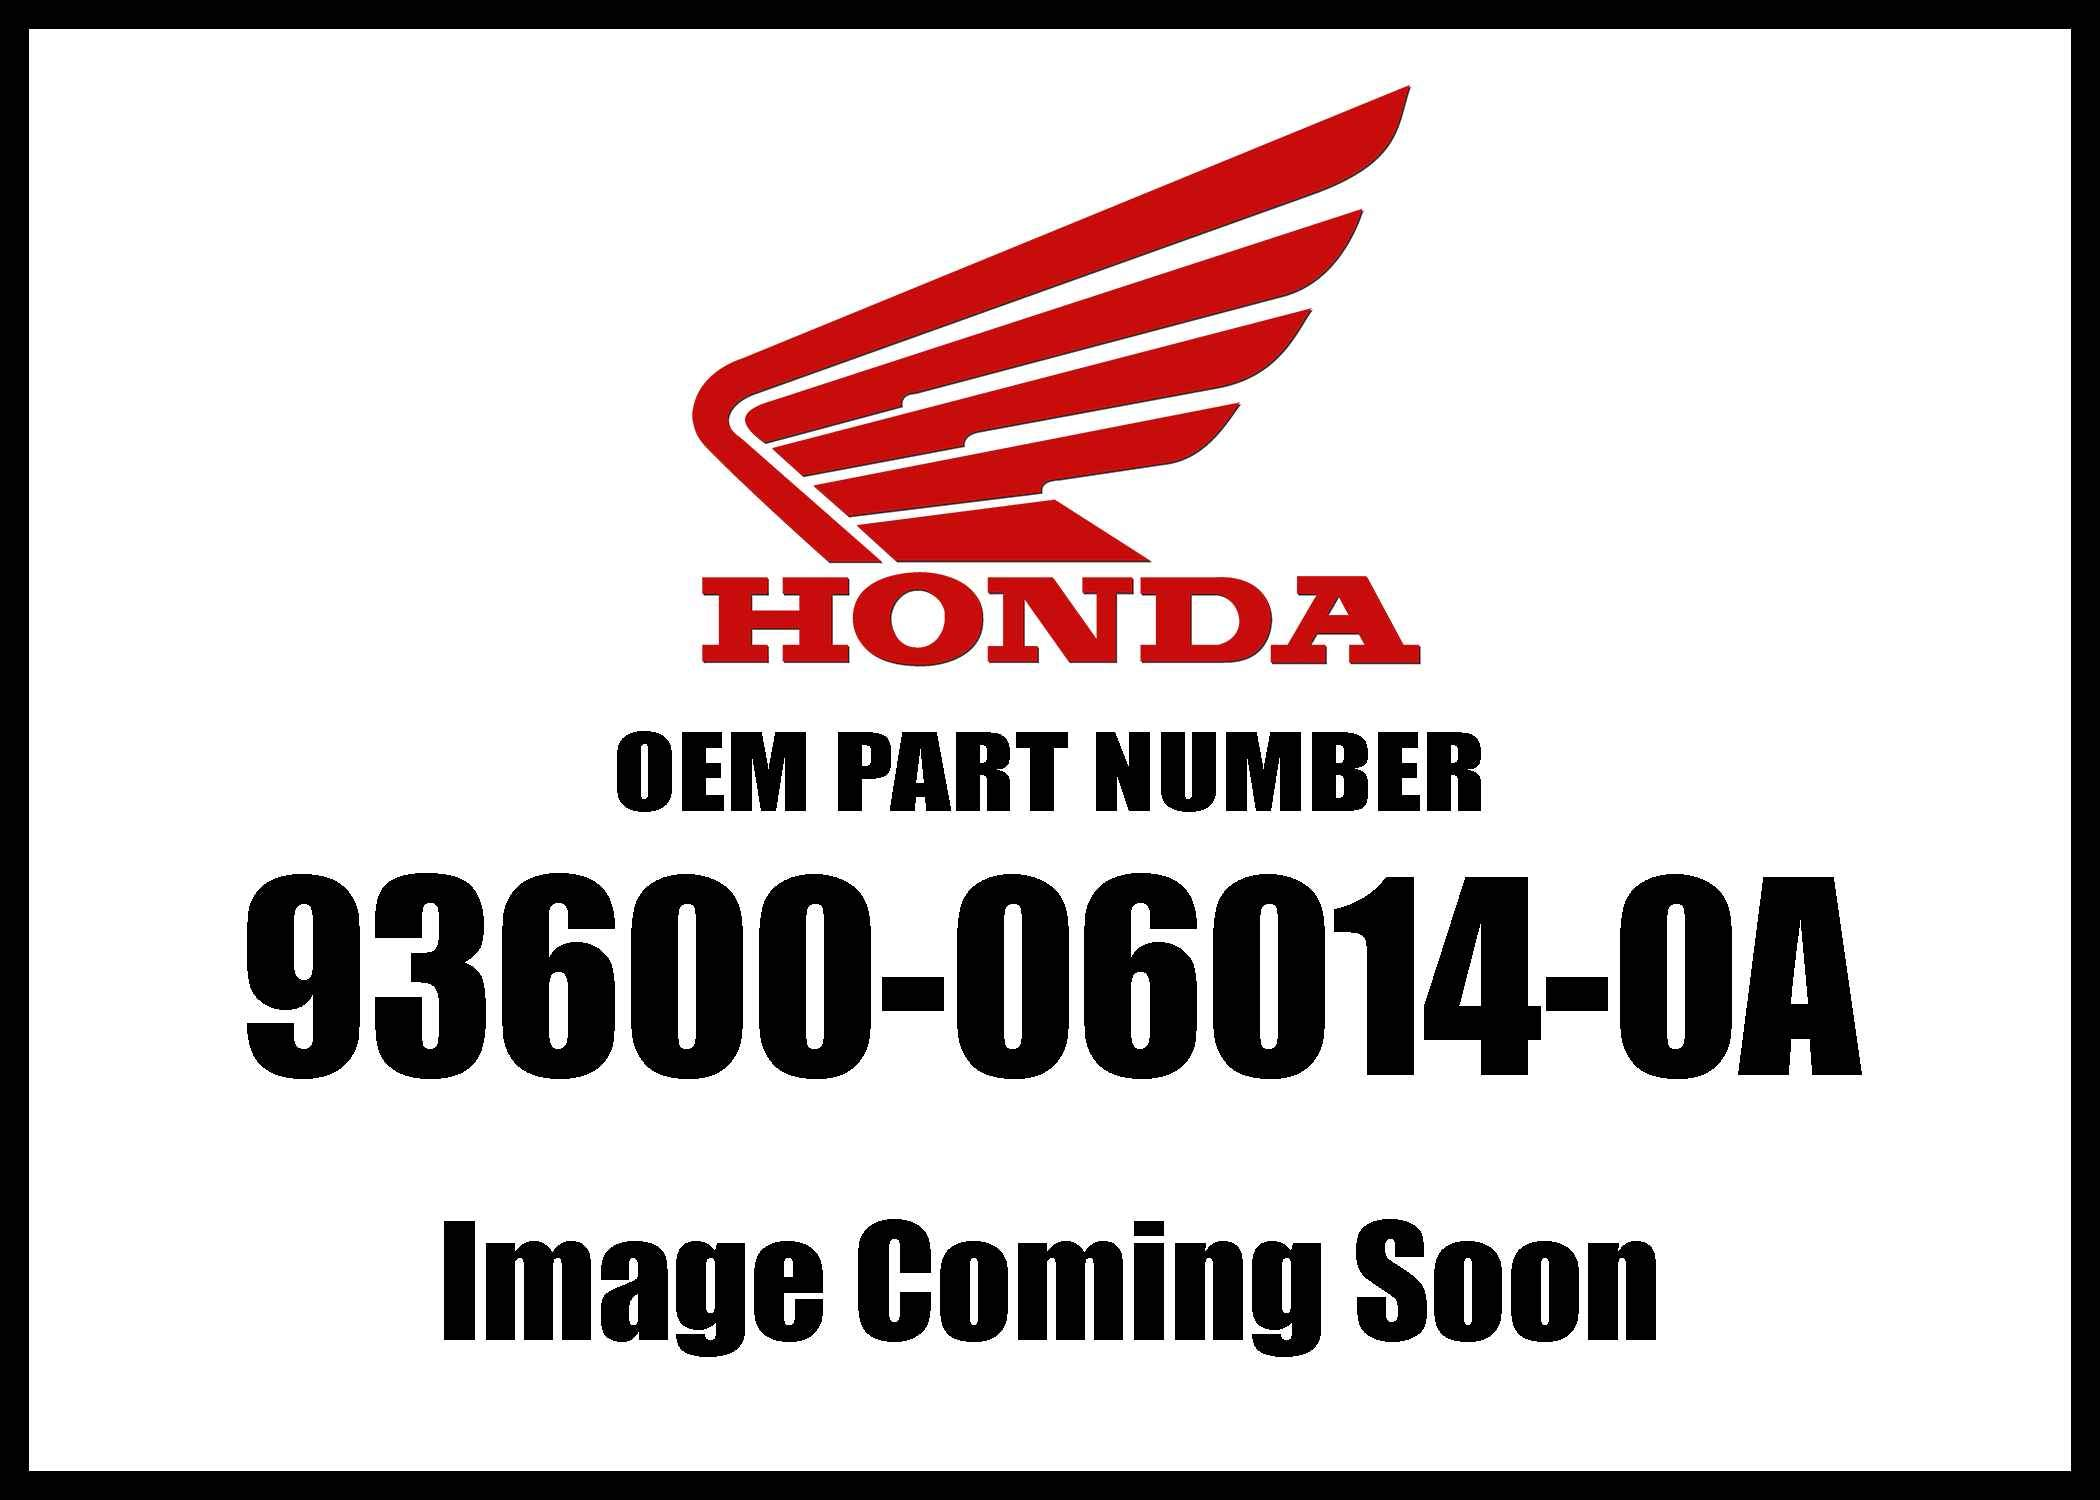 Honda 93600-06014-0A Screw Genuine Original Equipment Manufacturer (OEM) Part